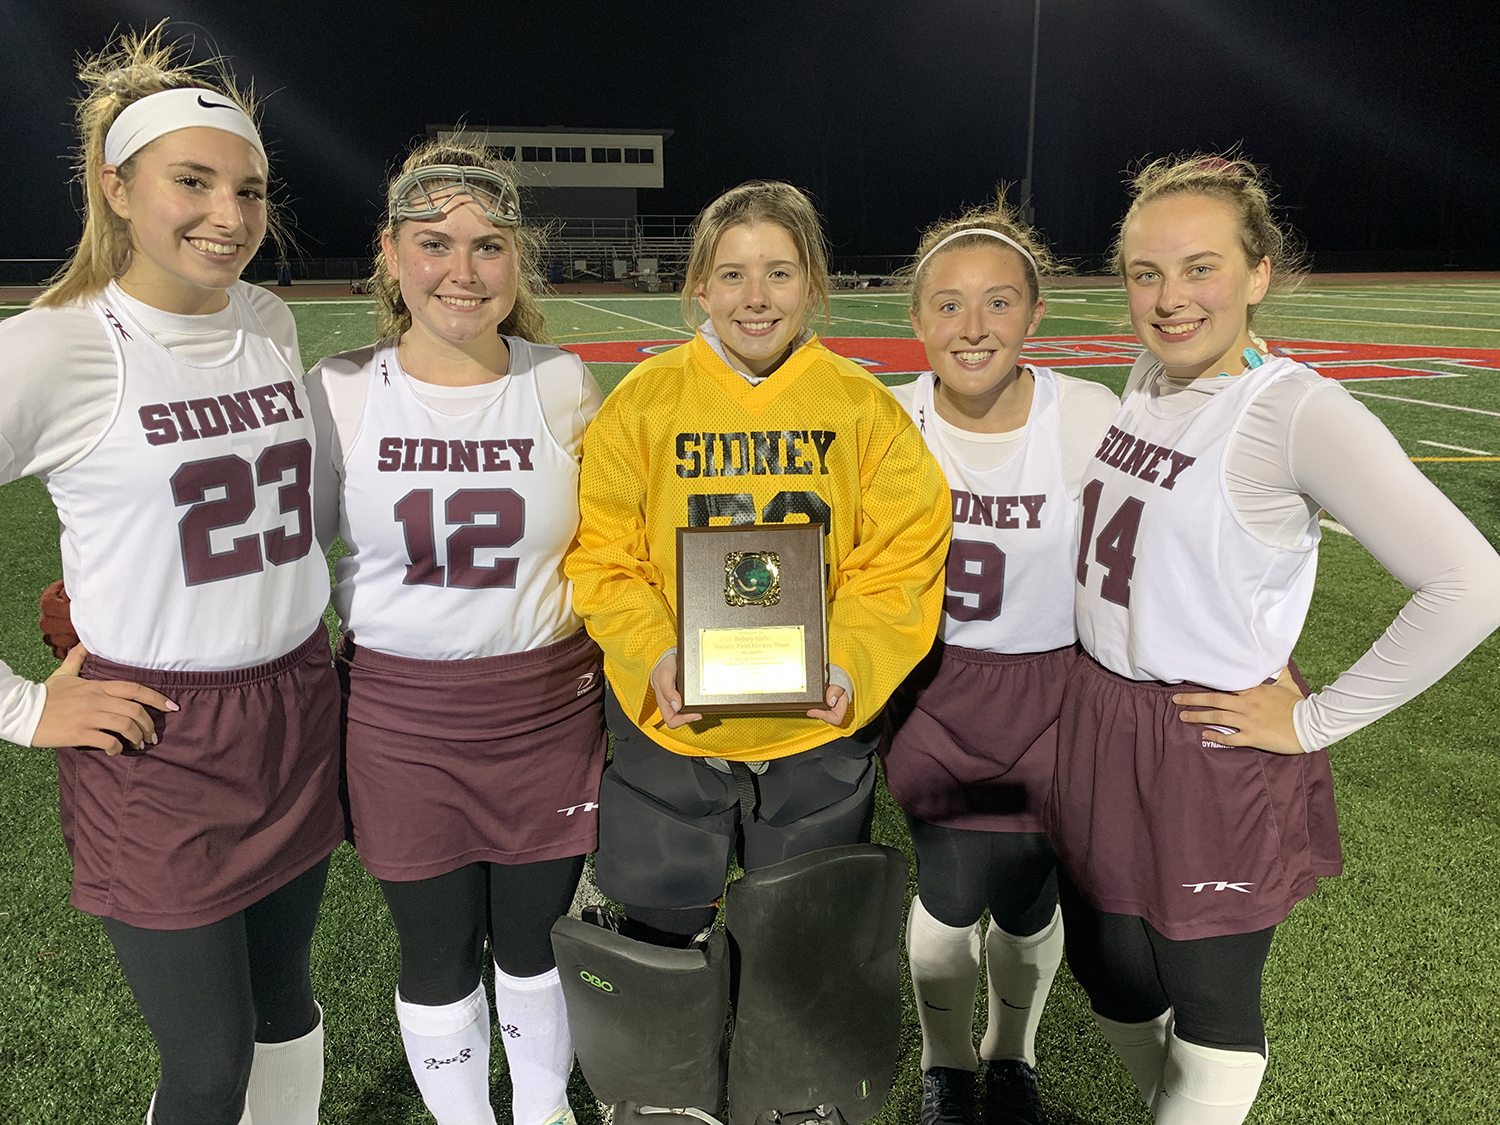 Sidney field hockey wins sportsmanship award